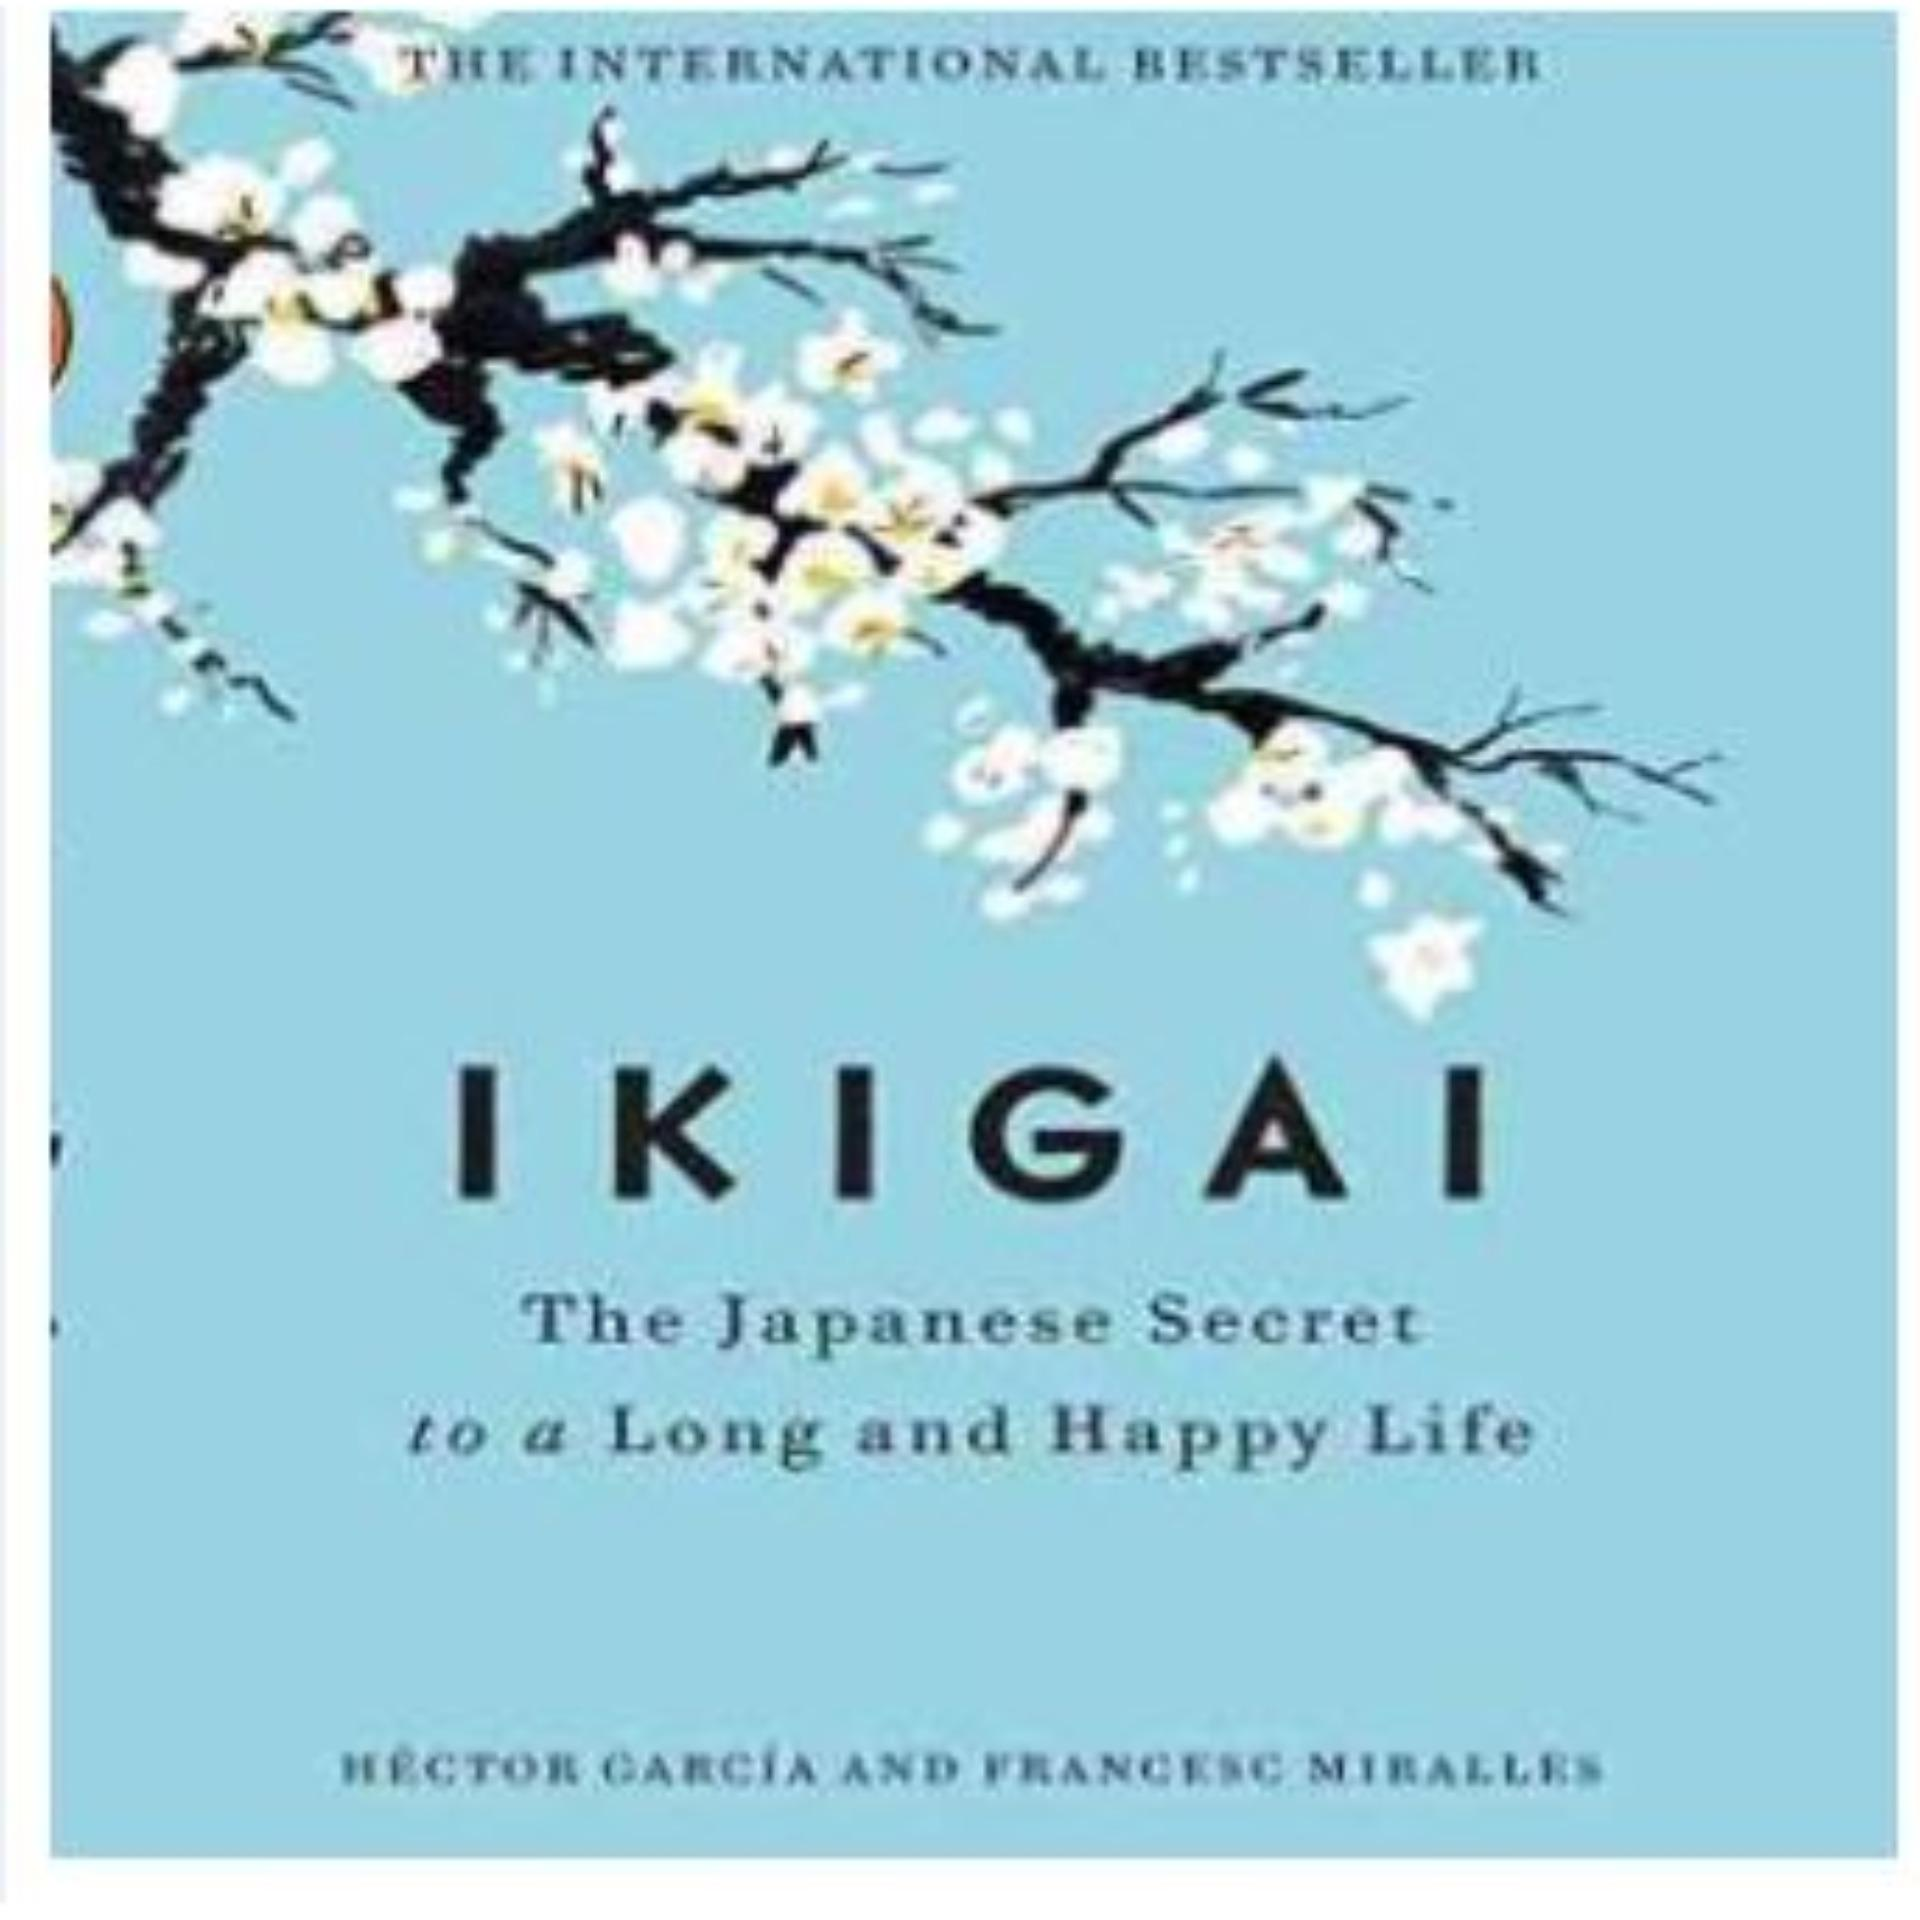 Ikigai: The Japanese Secret to a Long and Happy Life Book by Albert Liebermann ebook